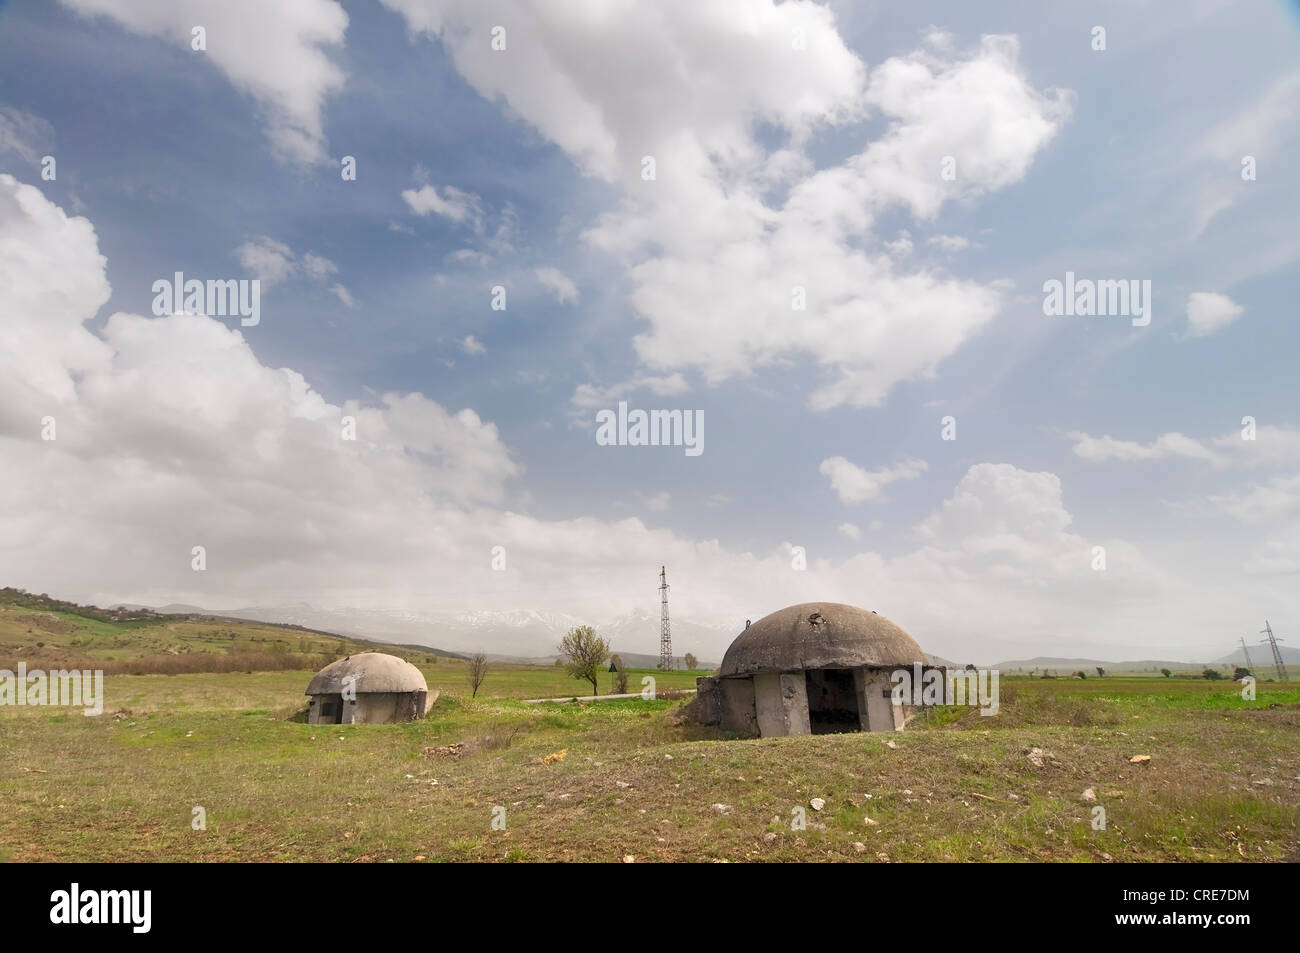 Bunkers in Albania - Stock Image